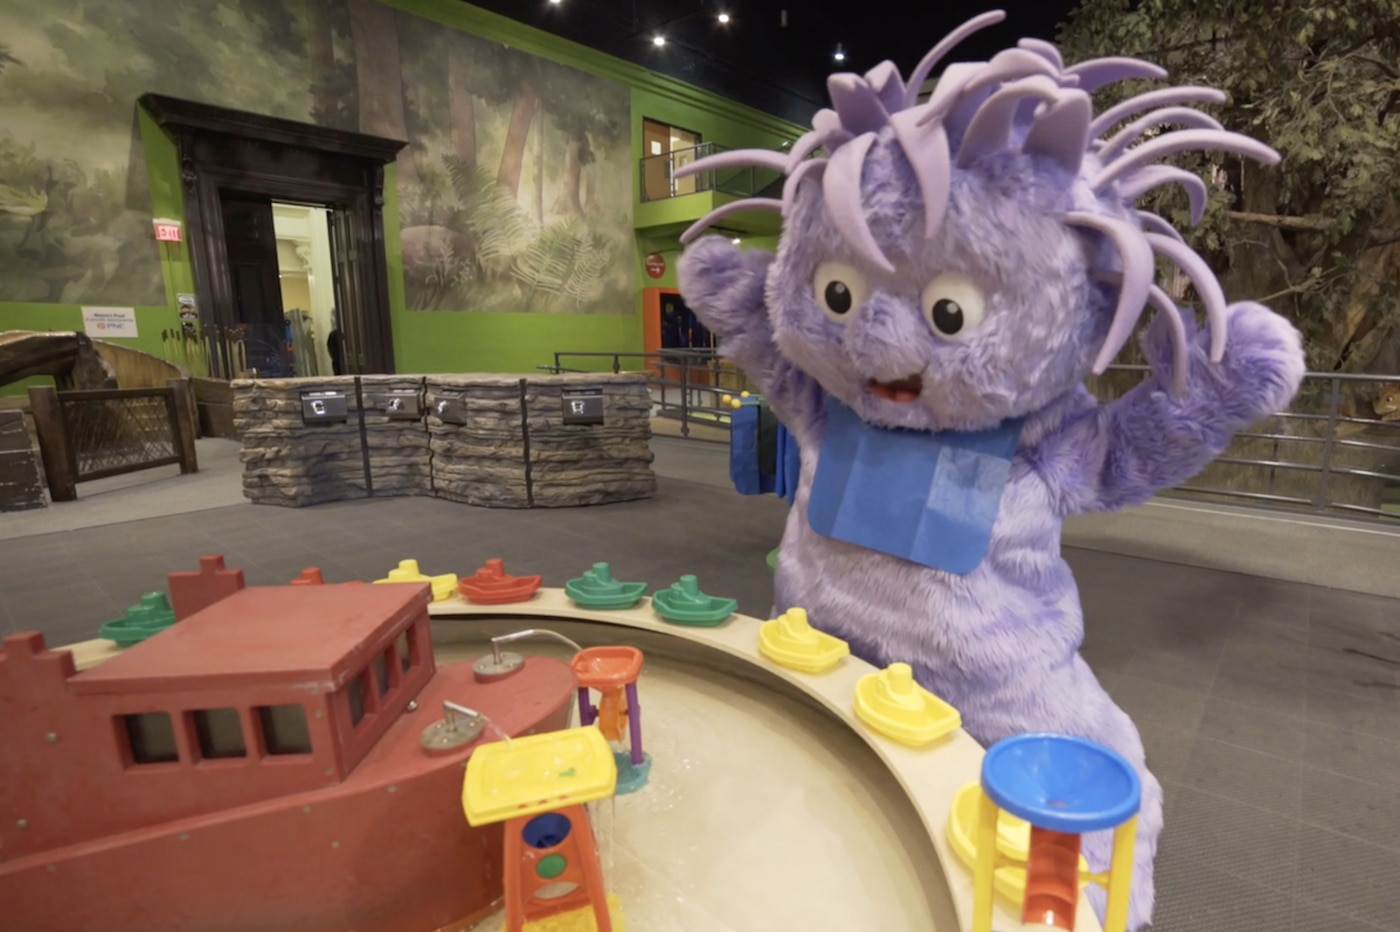 Genderless mascot empowers kids to explore their own curiosity | Opinion